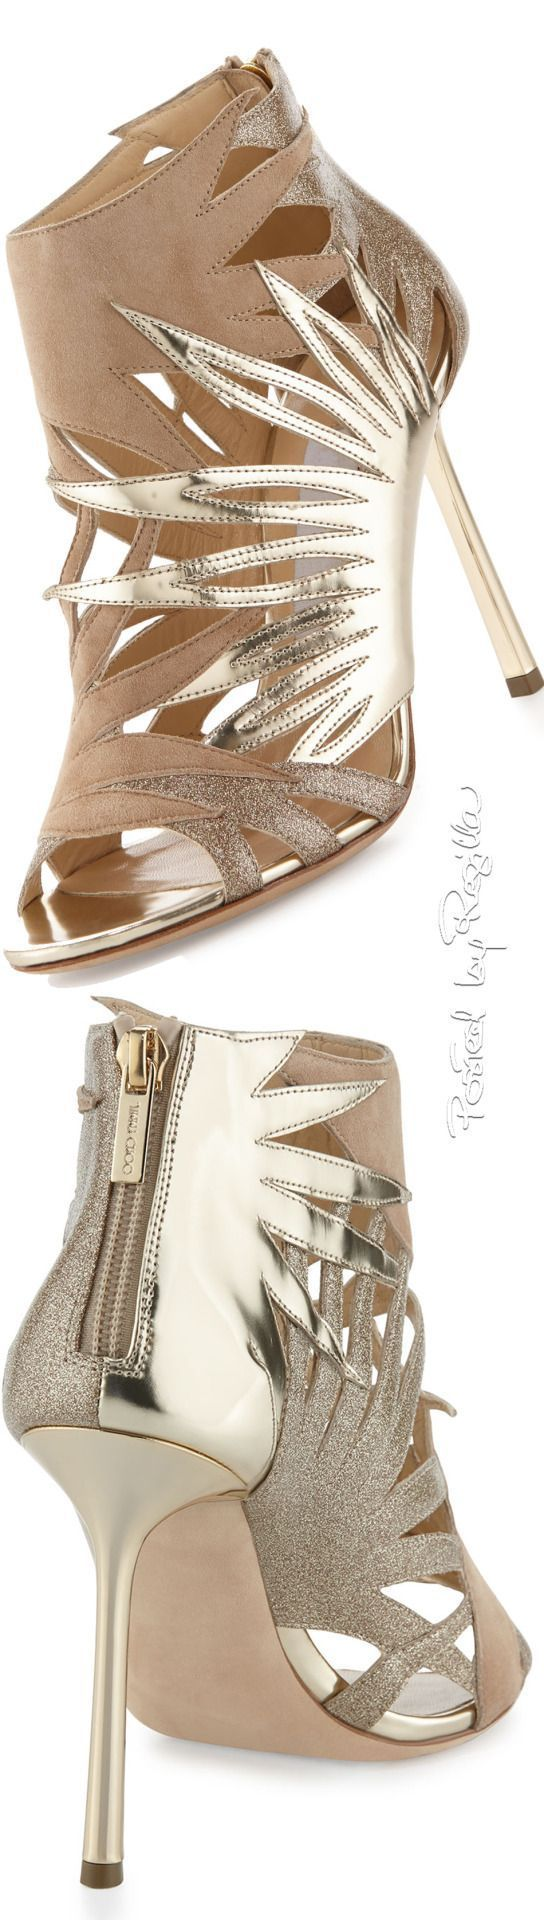 442fc82f4295 Regilla ⚜ Jimmy Choo❤ ....Perfect for spring.....How to make high heels  comfortable - you tube at www.youtube.com ... ...also see hopscotch in  heels!!